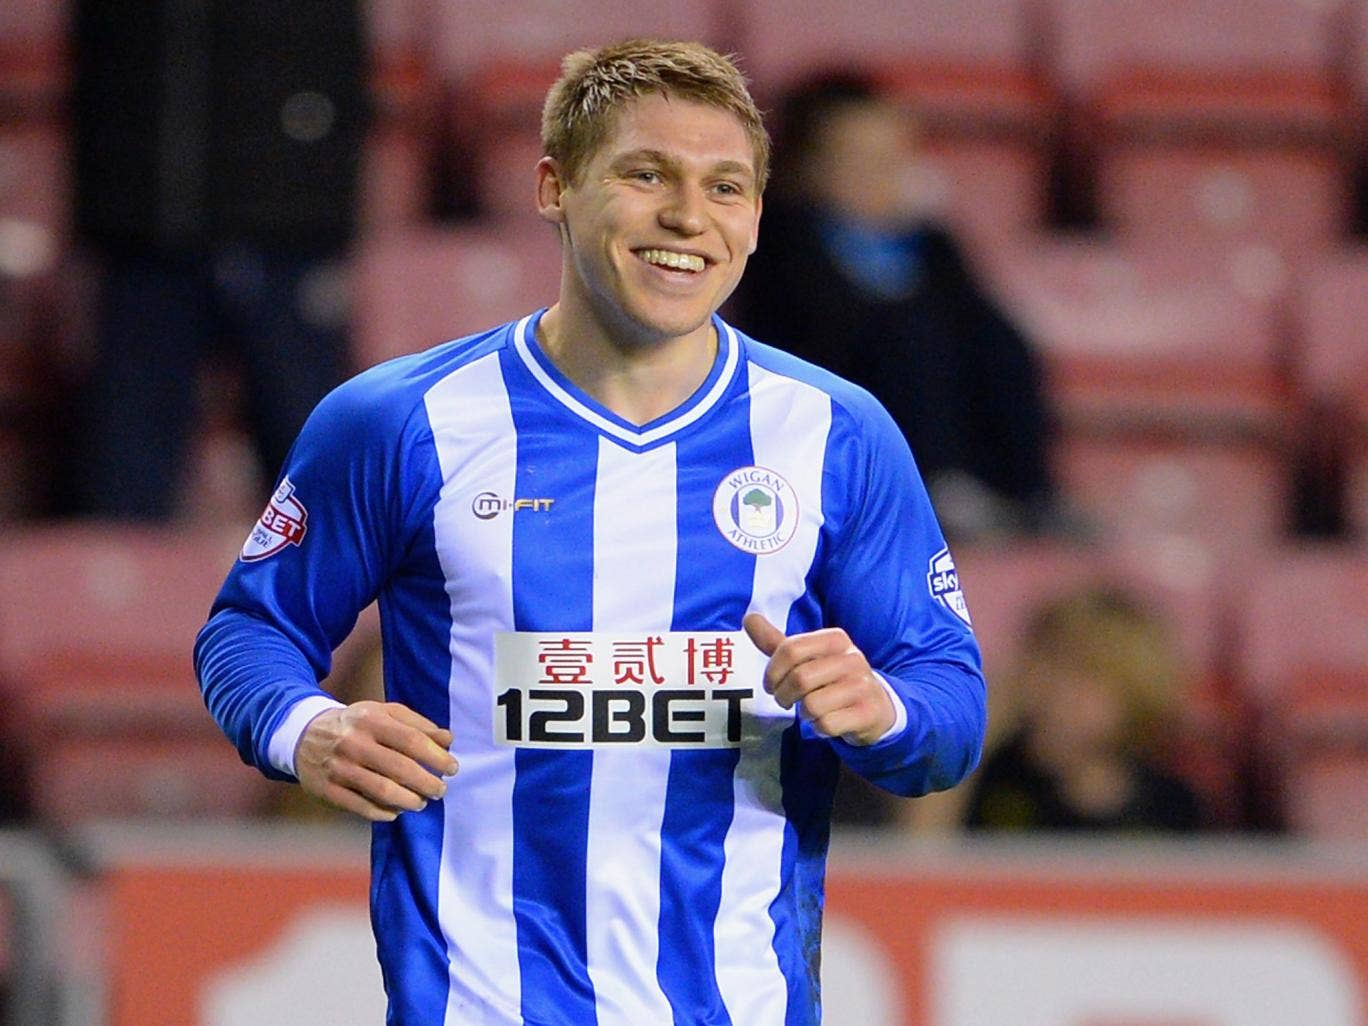 Martyn Waghorn celebrated his permanent move to Wigan with the winning goal against Leeds